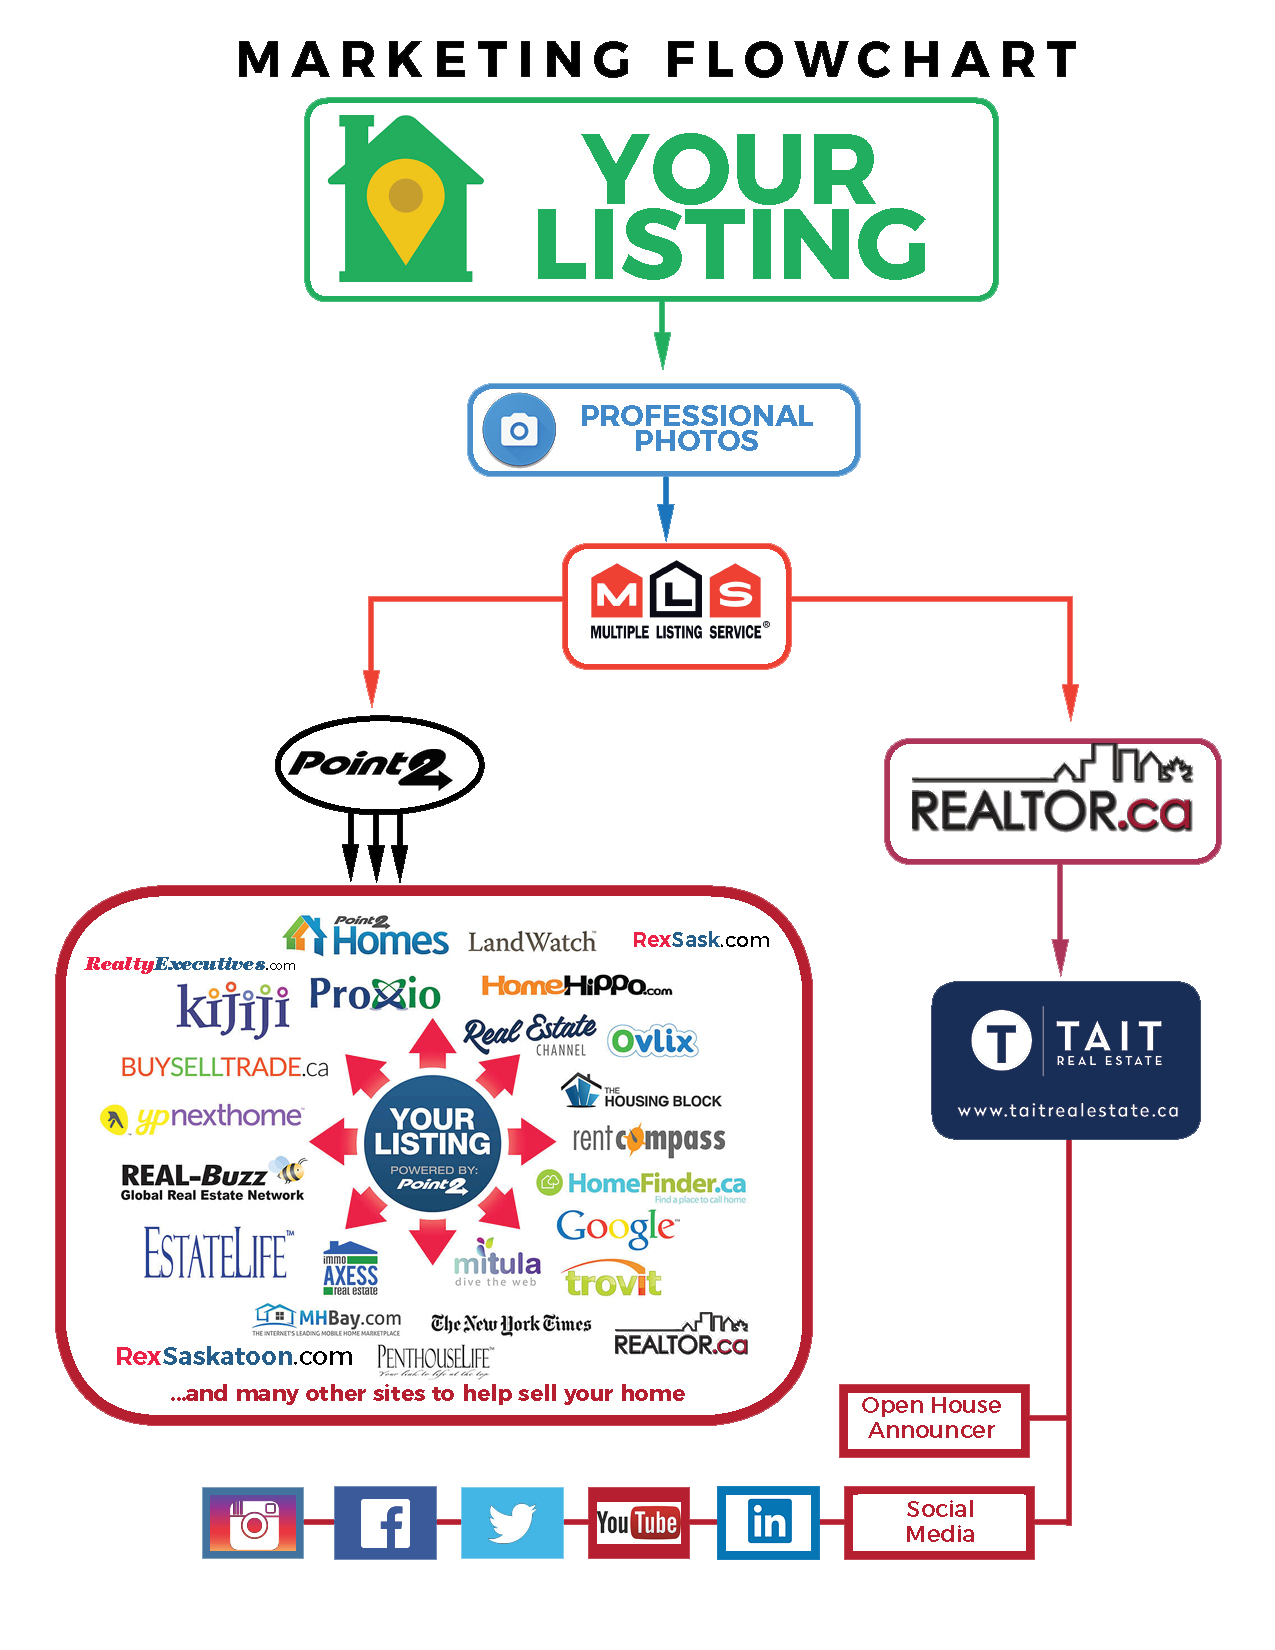 Marketing flow chart for Tait Real Estate